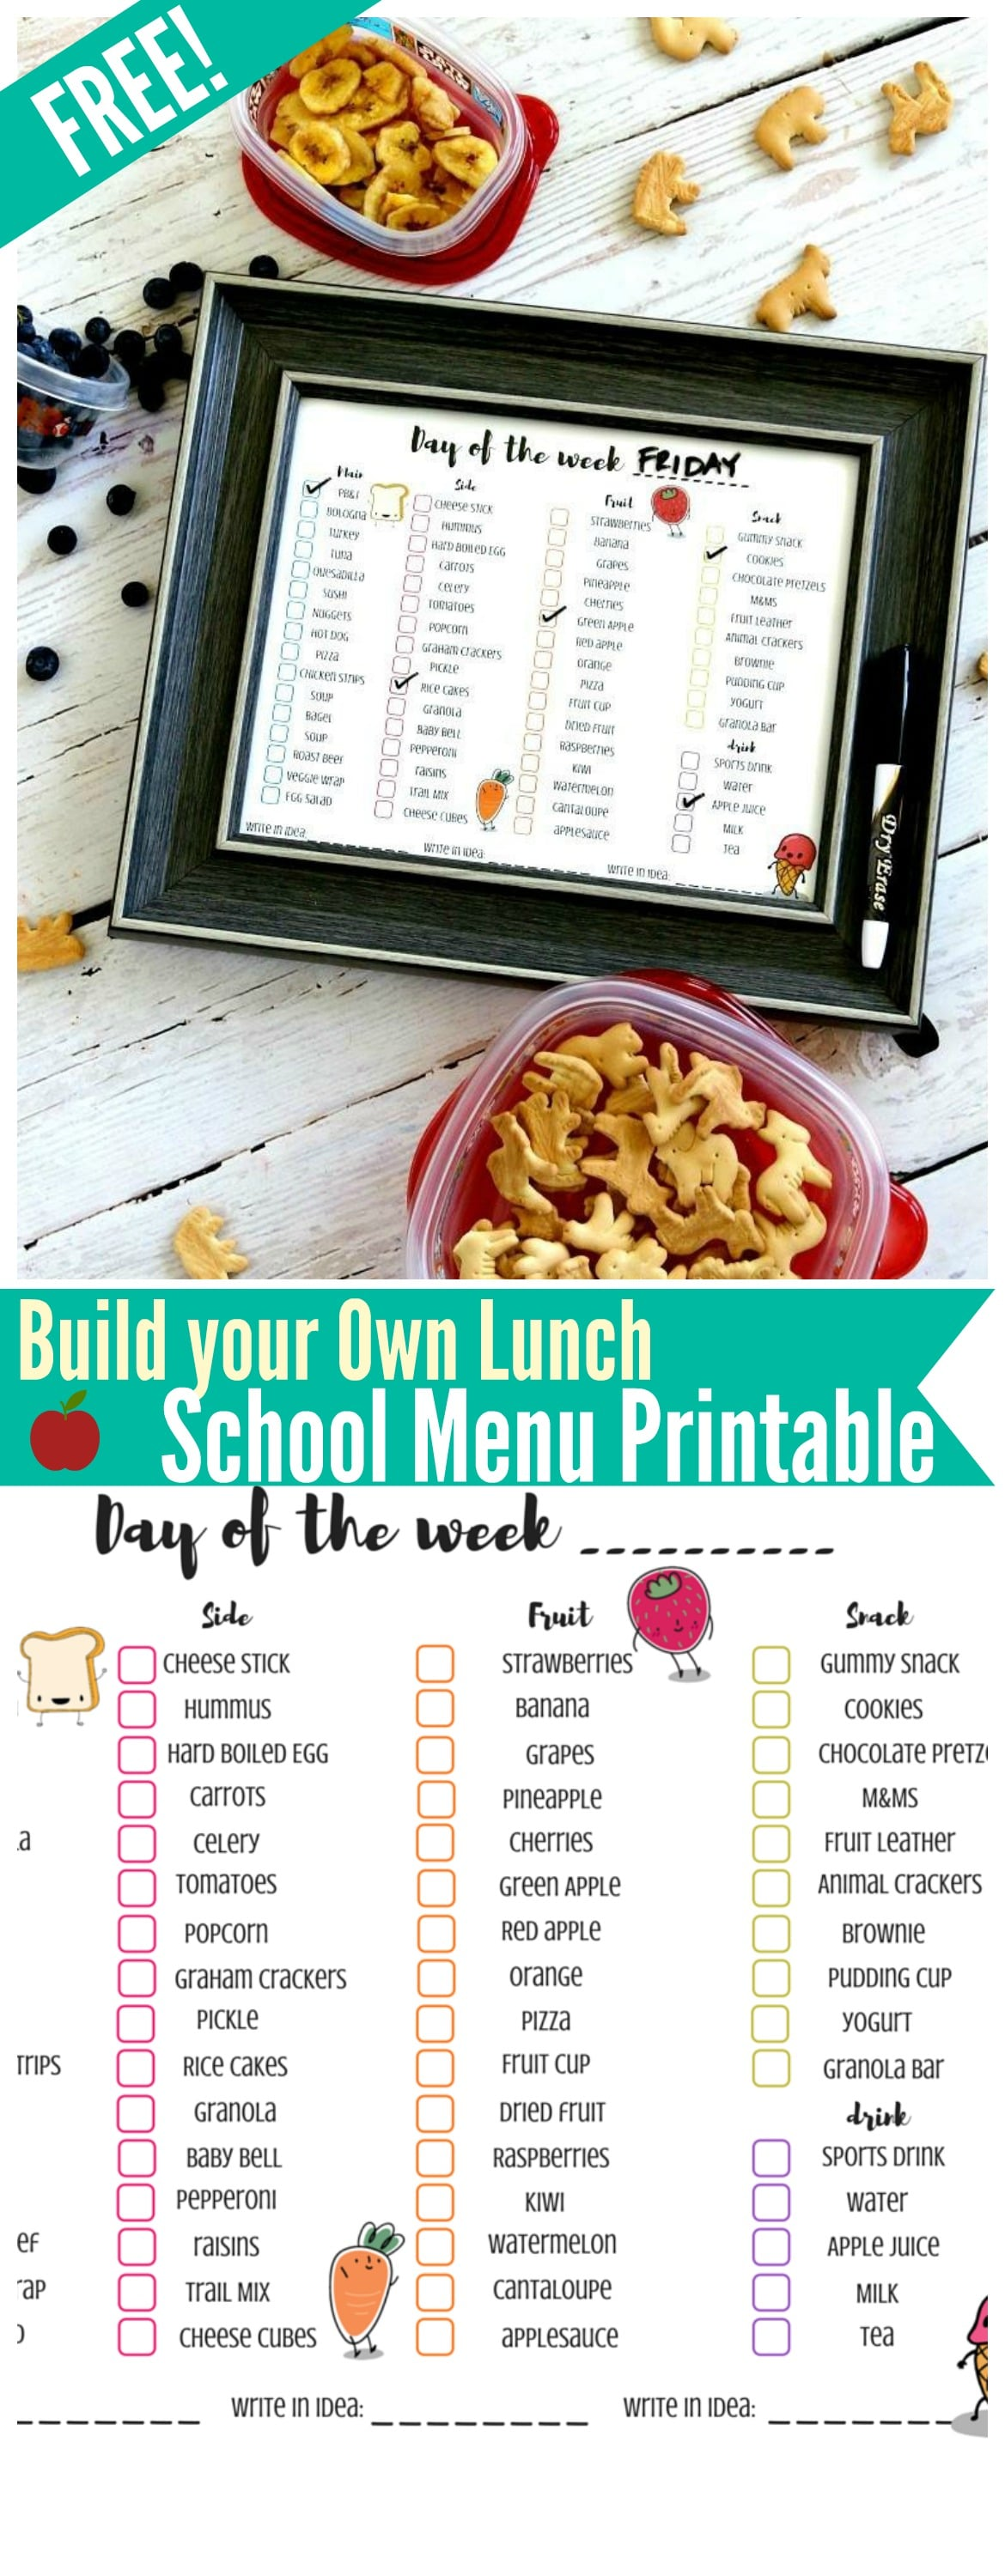 Free School Lunch Menu Printable: Easily put in a frame or laminate for usage over and over- encourages freedom and choices. Kids checkmark what they would like in their lunch! FREE PRINTABLE MENU